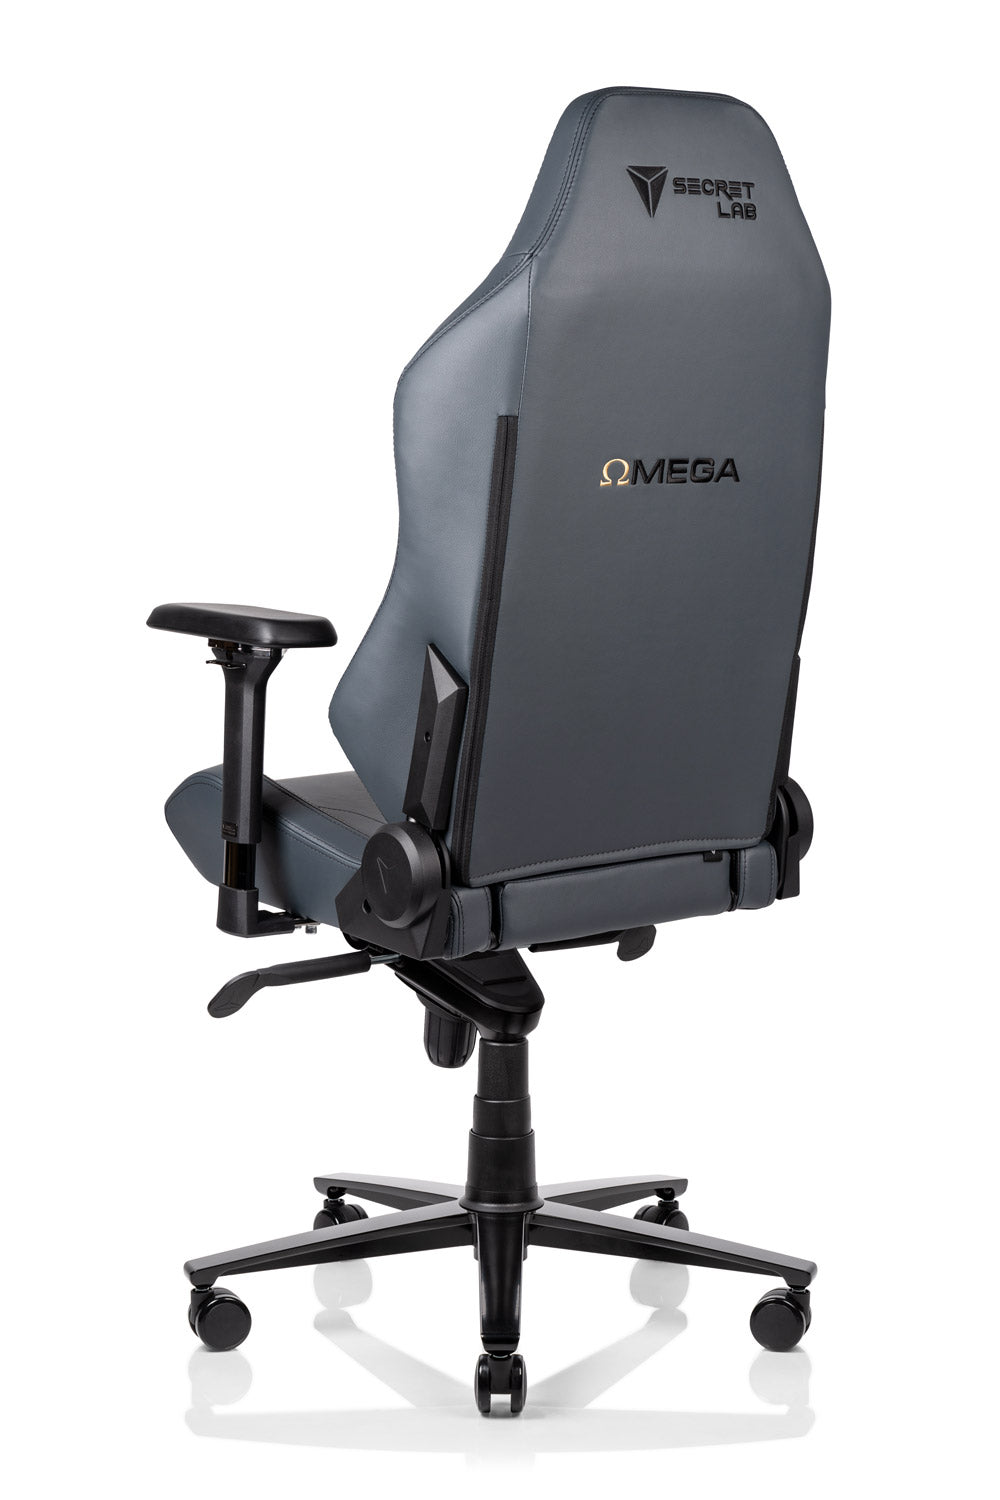 Best Pc Chairs 2020 OMEGA Series gaming chairs | Secretlab US